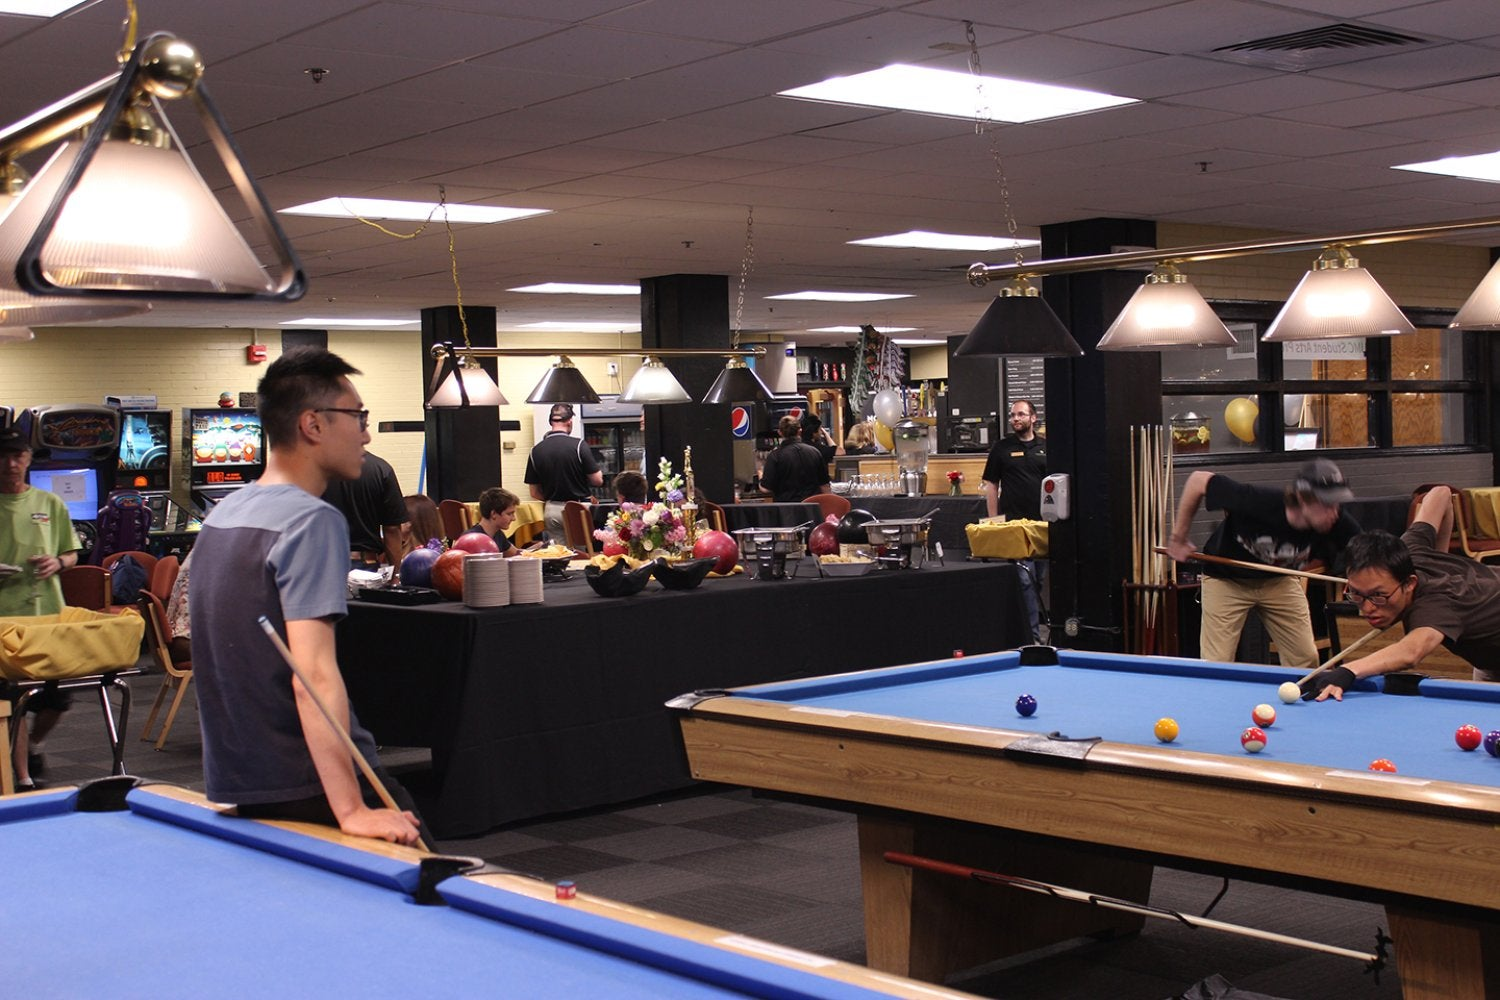 Students play billiards during a special event at The Connection